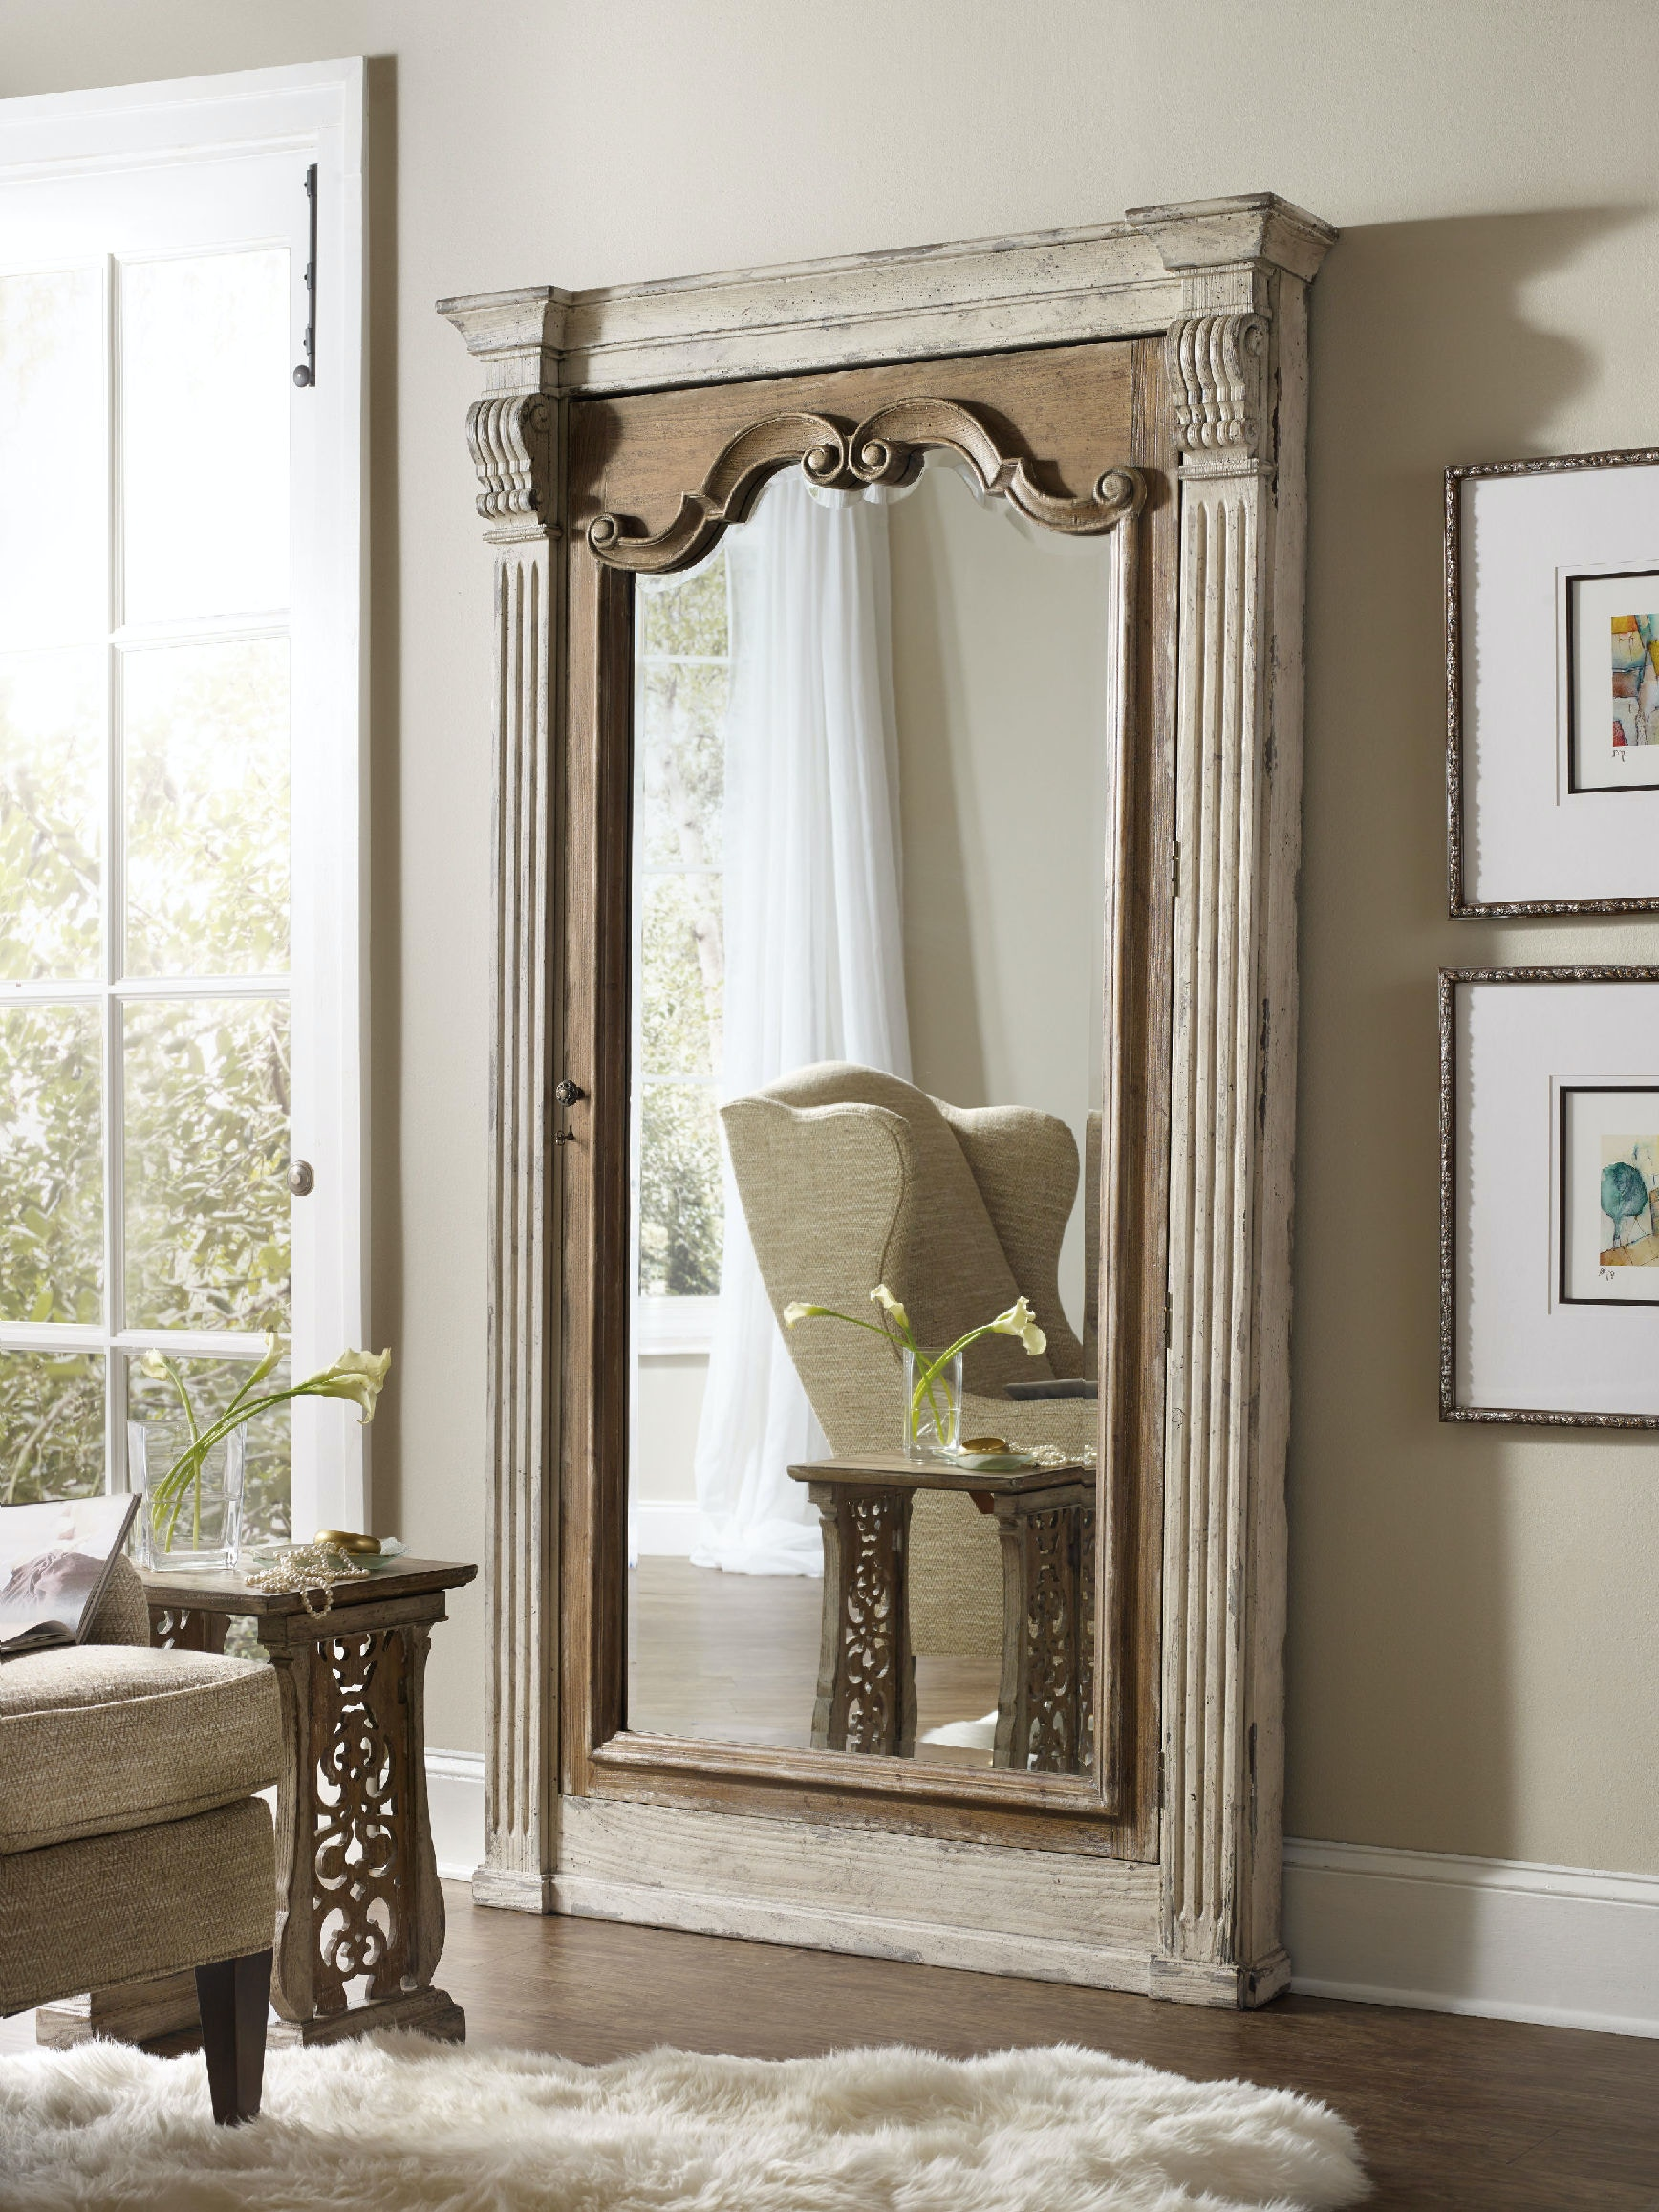 Exceptionnel Hooker Furniture Chatelet Floor Mirror W/Jewelry Armoire Storage 5351 50003